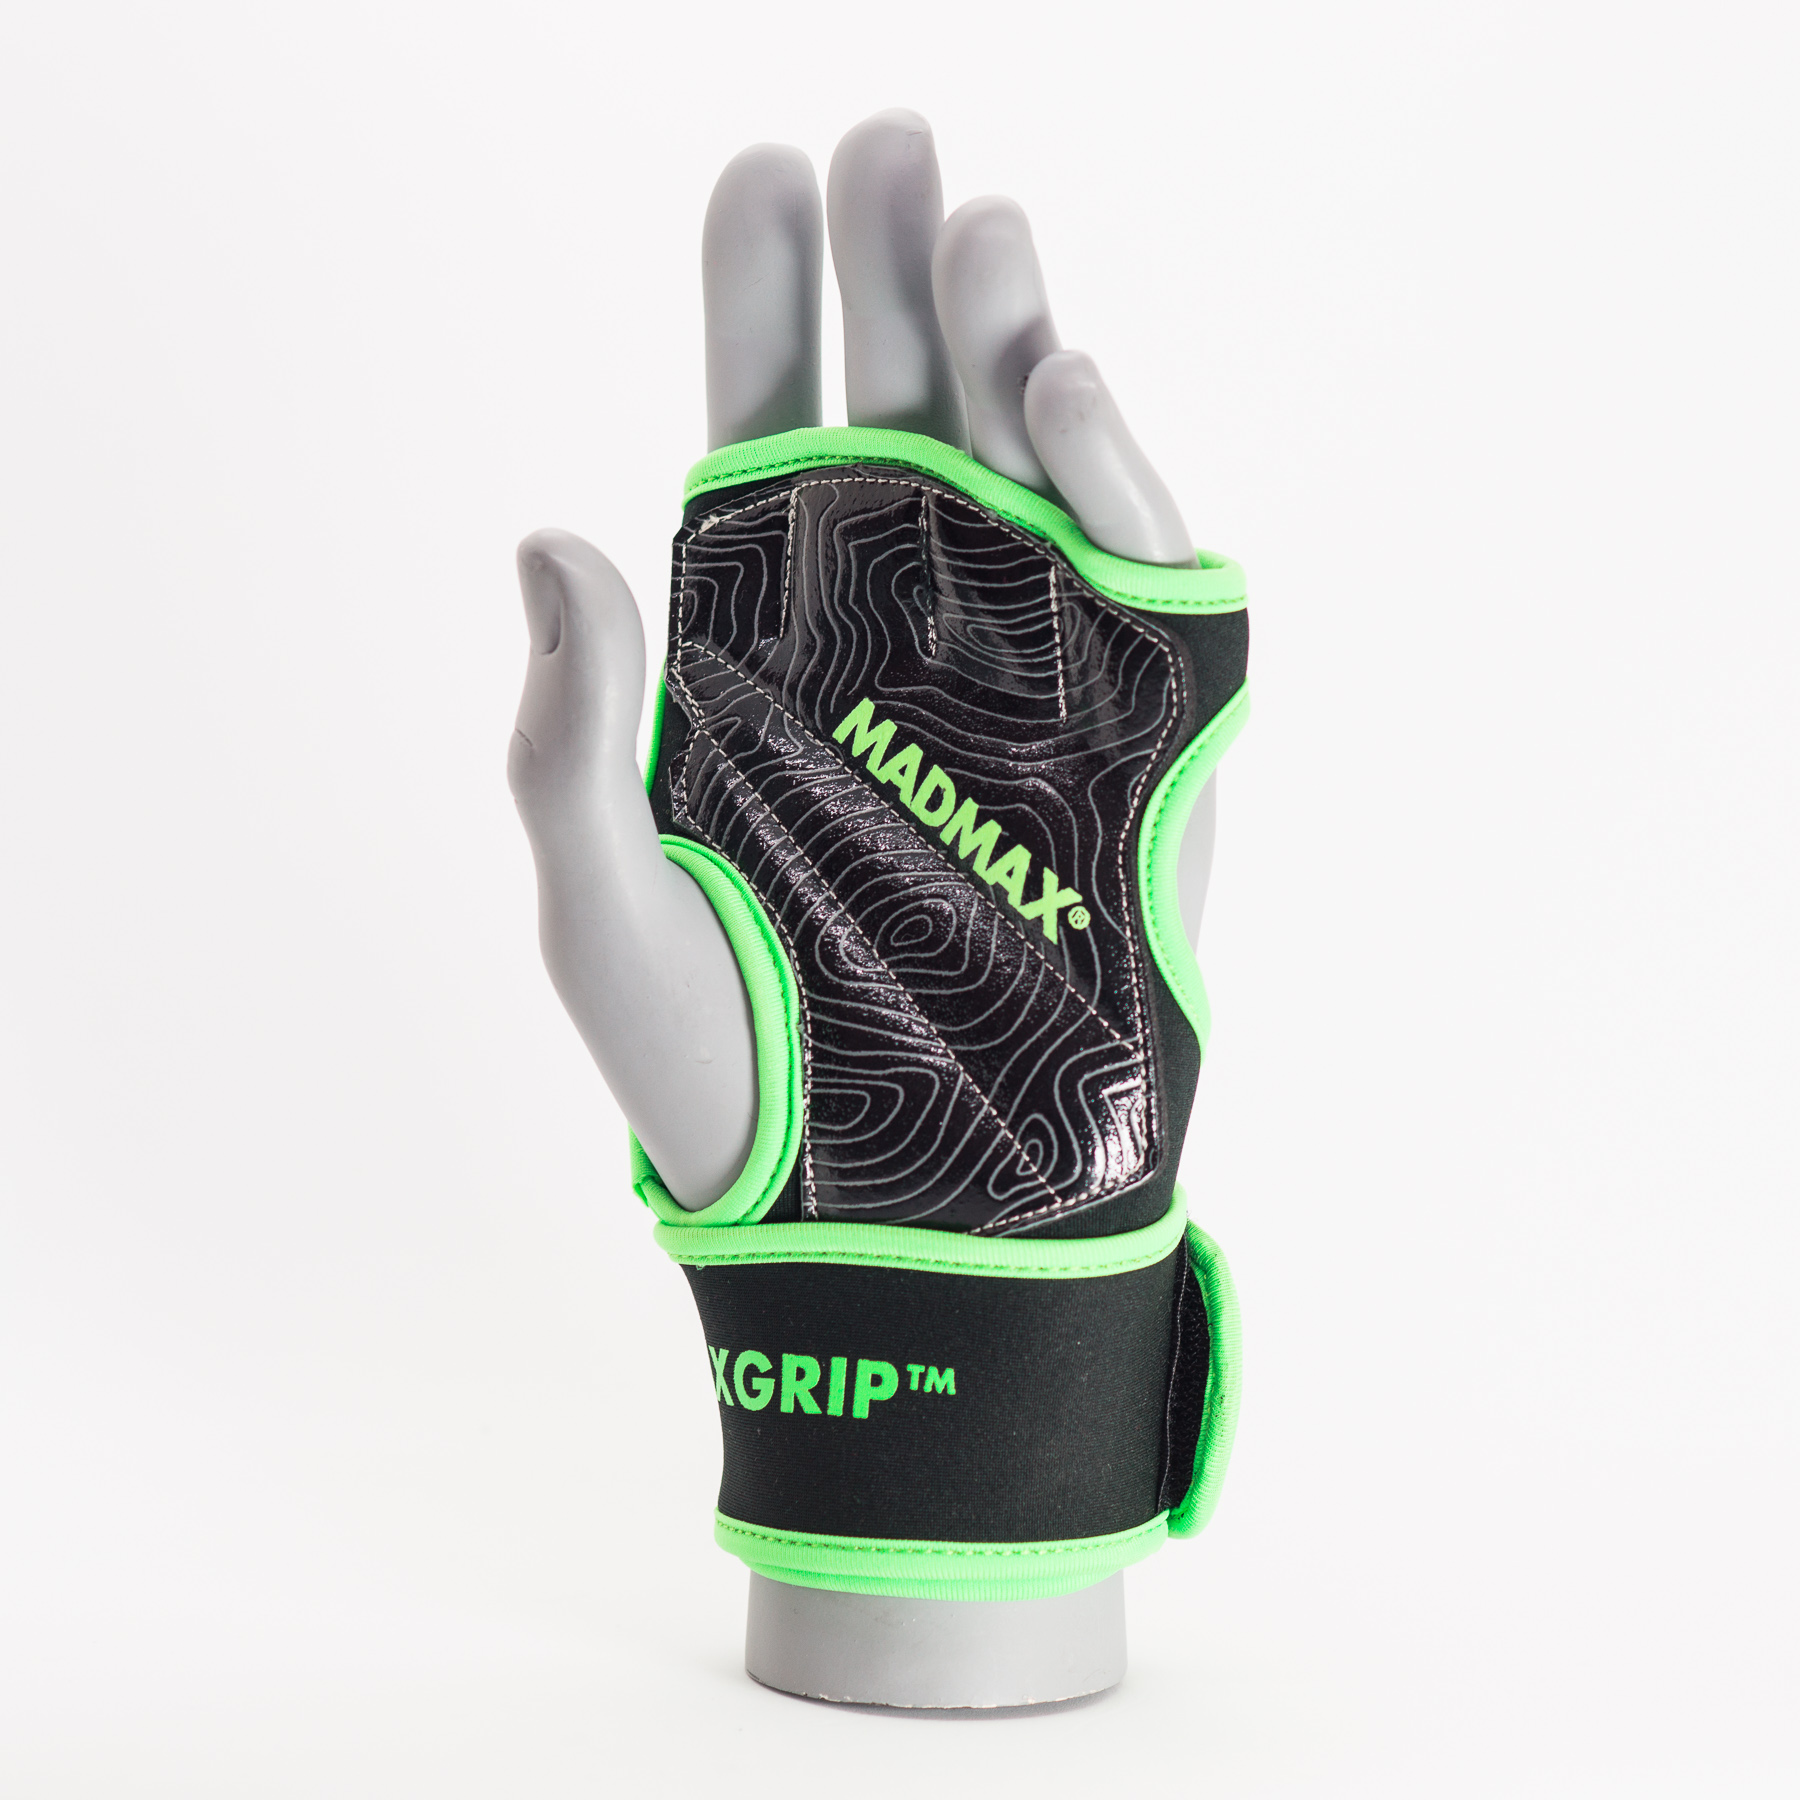 MAXGRIP Neoprene Wraps